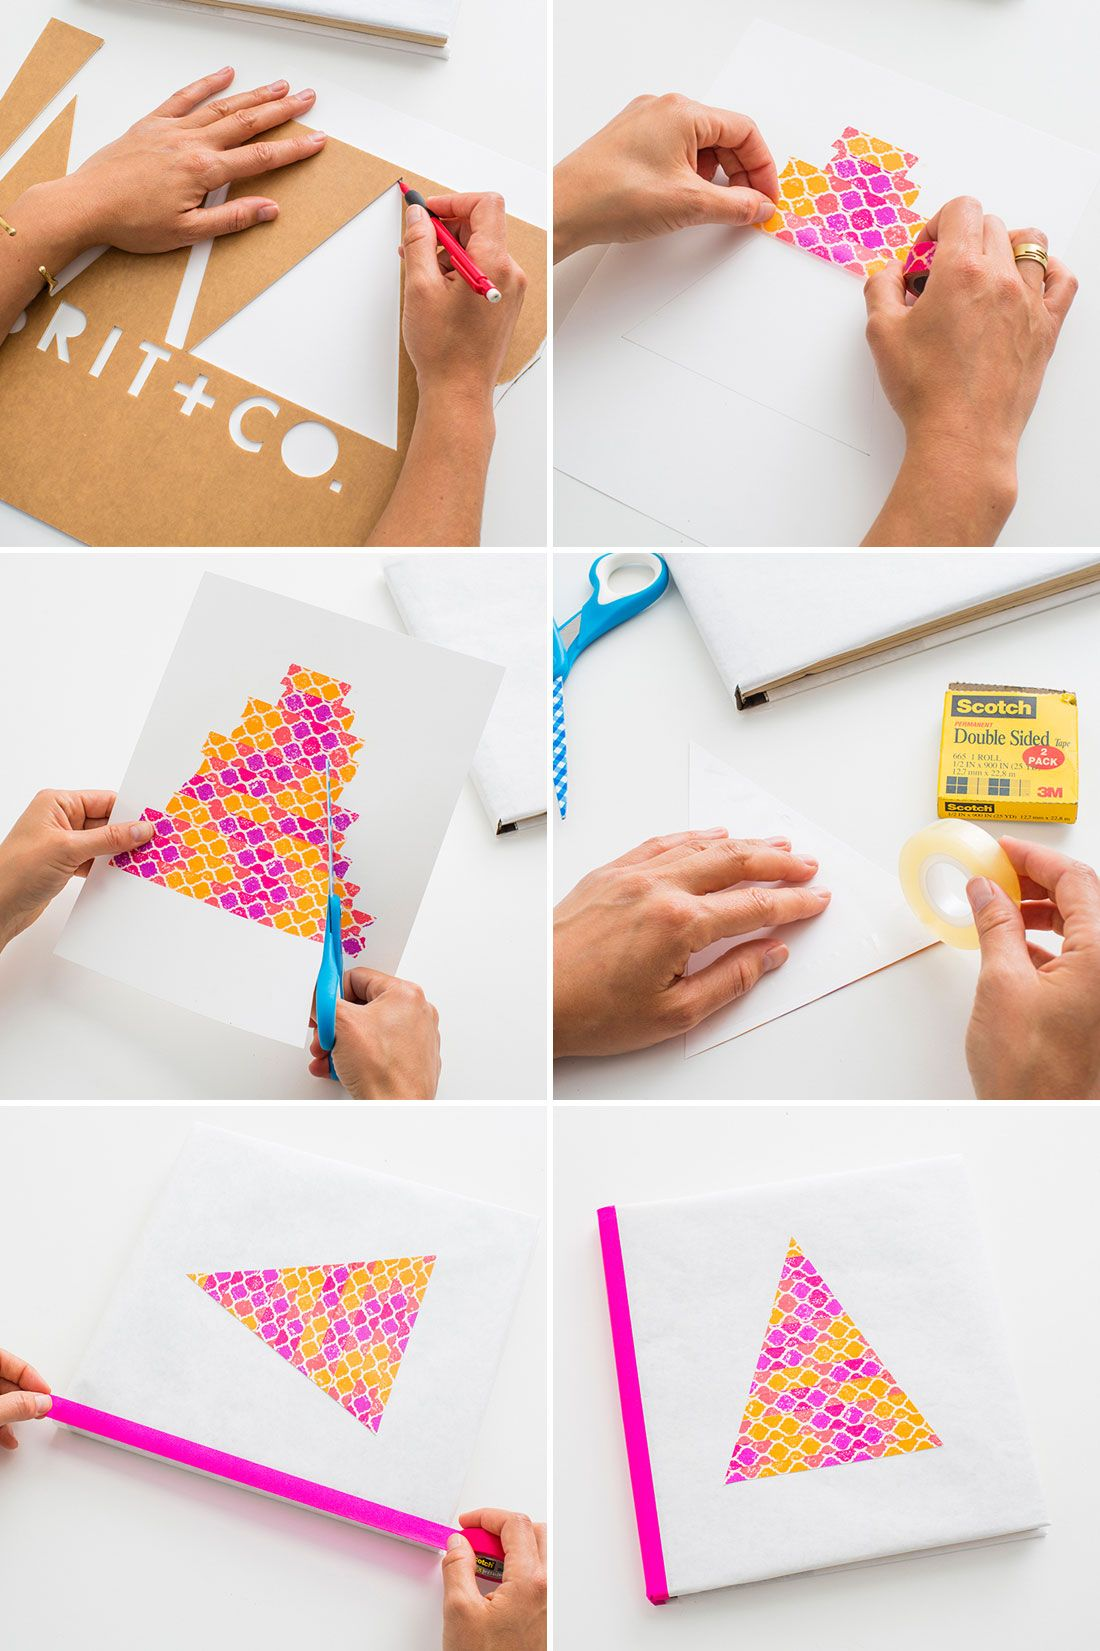 Book Cover Craft Map : Tbt make old school book covers with colorful tape via